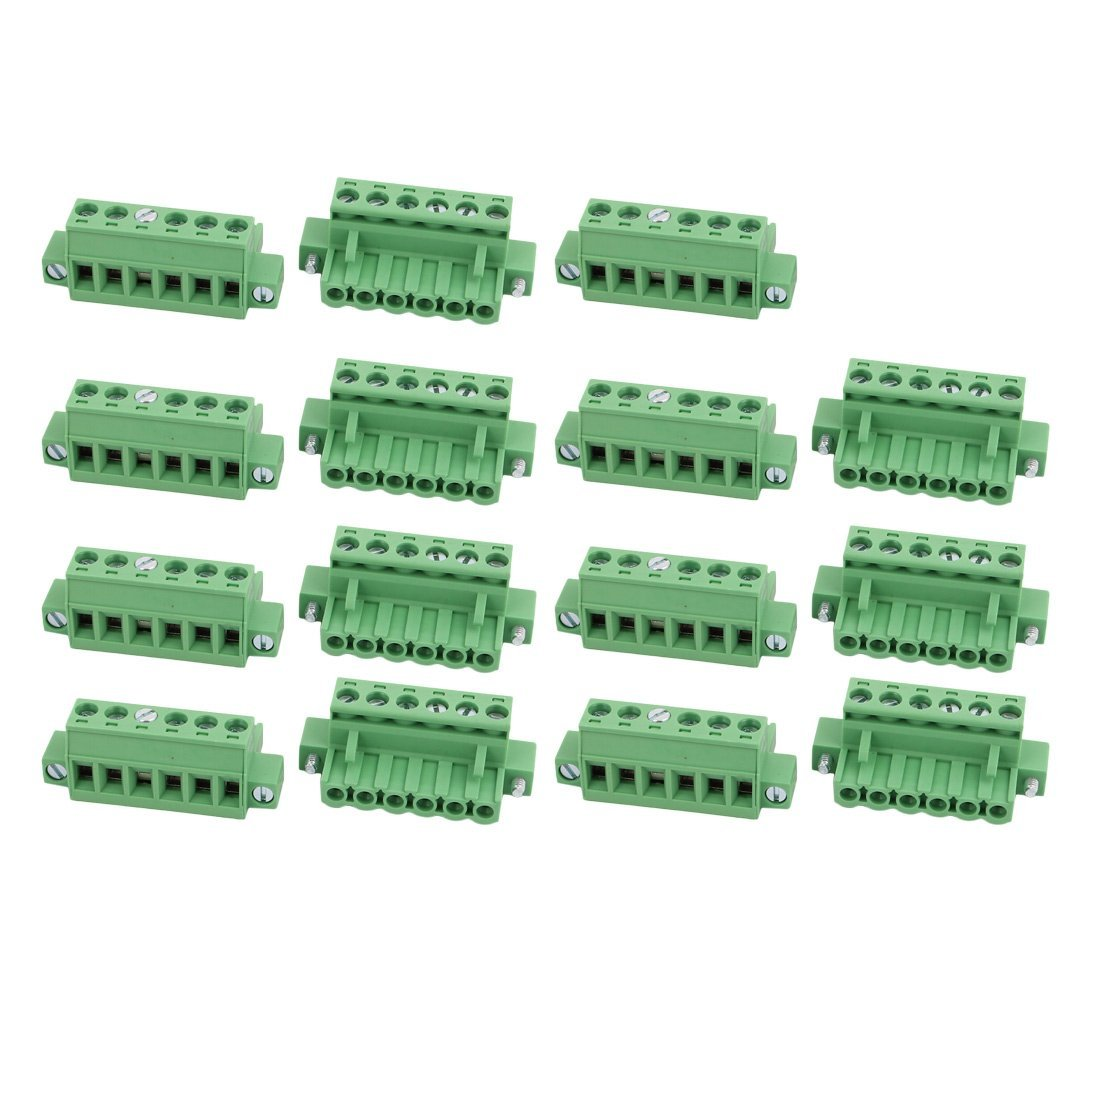 uxcell 15 Pcs LC1M AC300V 15A 5.0mm Pitch 6P PCB Mount Terminal Block Wire Connector